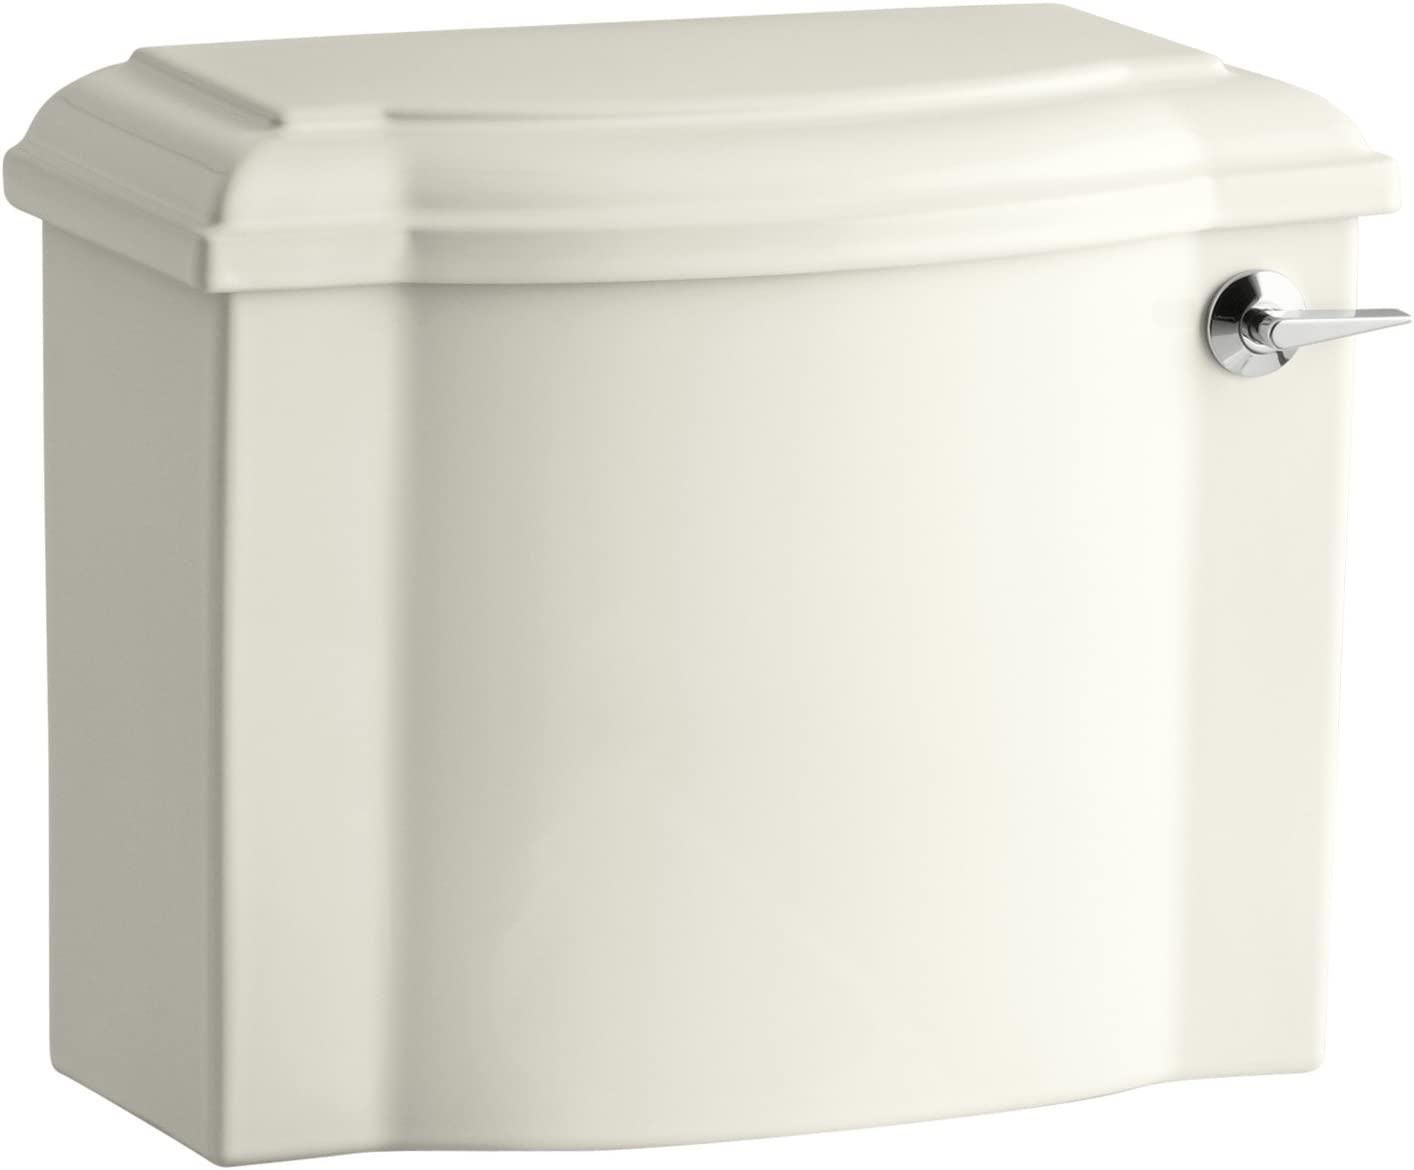 KOHLER K-4438-RA-96 Devonshire R 1.28 Right-Hand Sale SALE% OFF shopping Tank GPF with